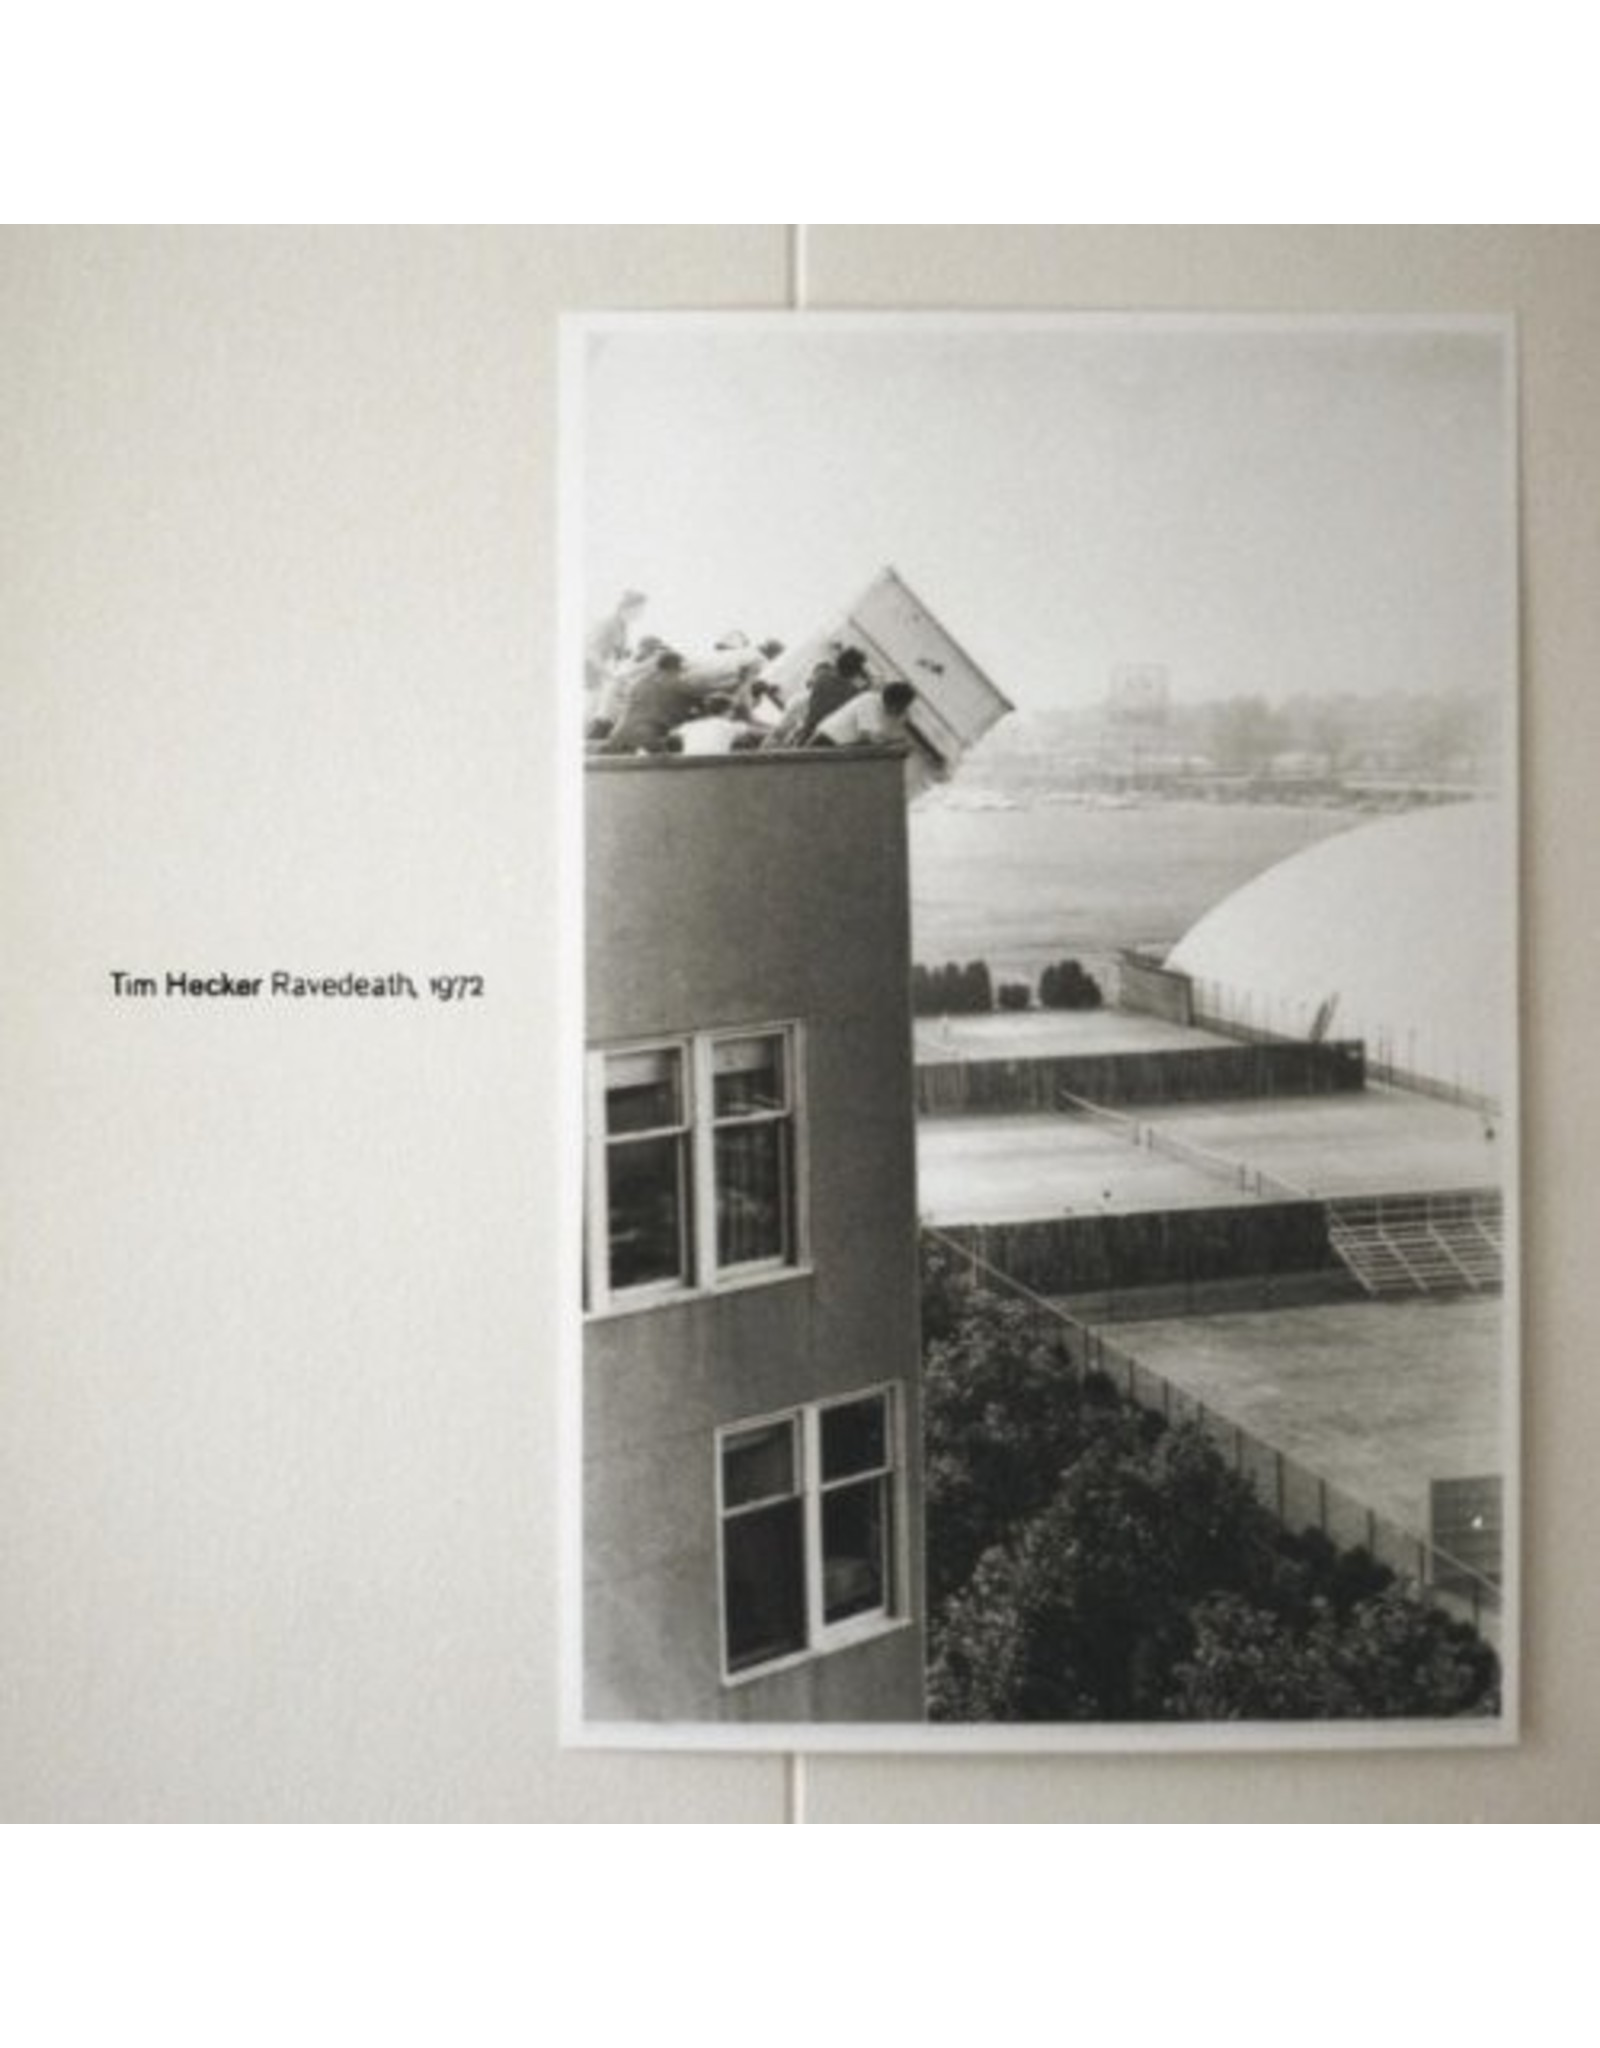 New Vinyl Tim Hecker - Ravedeath 1972 LP